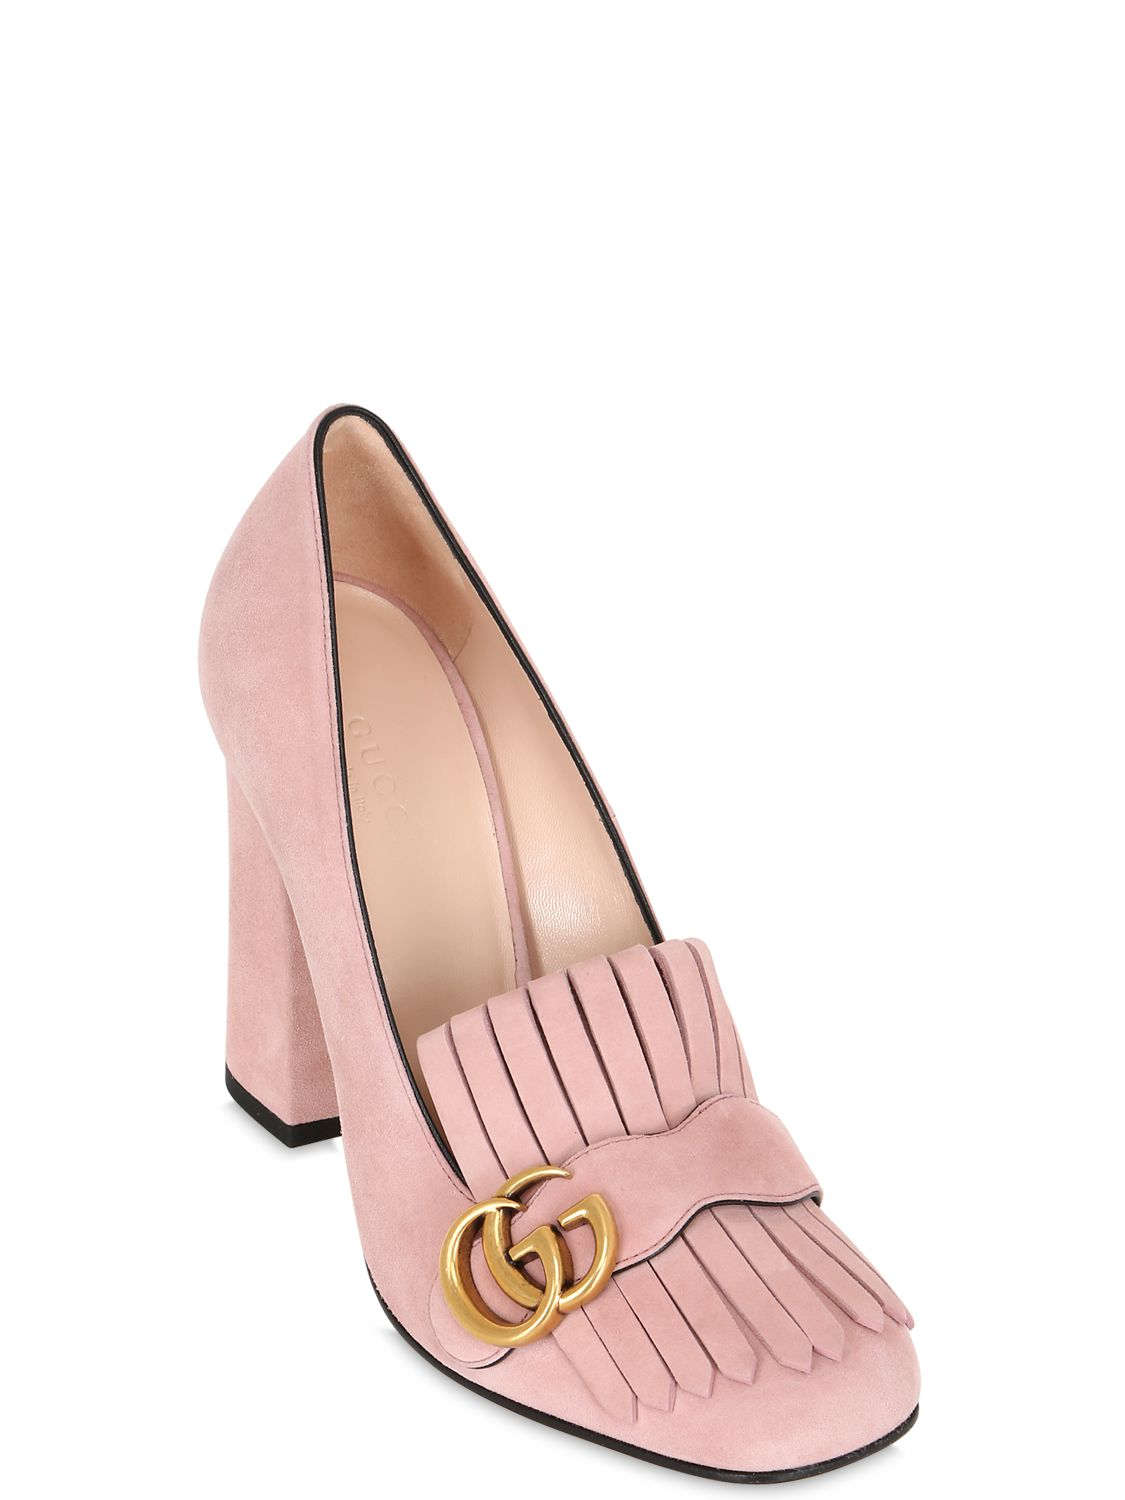 5cb2cef81d6 Gucci 105mm Marmont Fringed Suede Pumps in Pink - Lyst